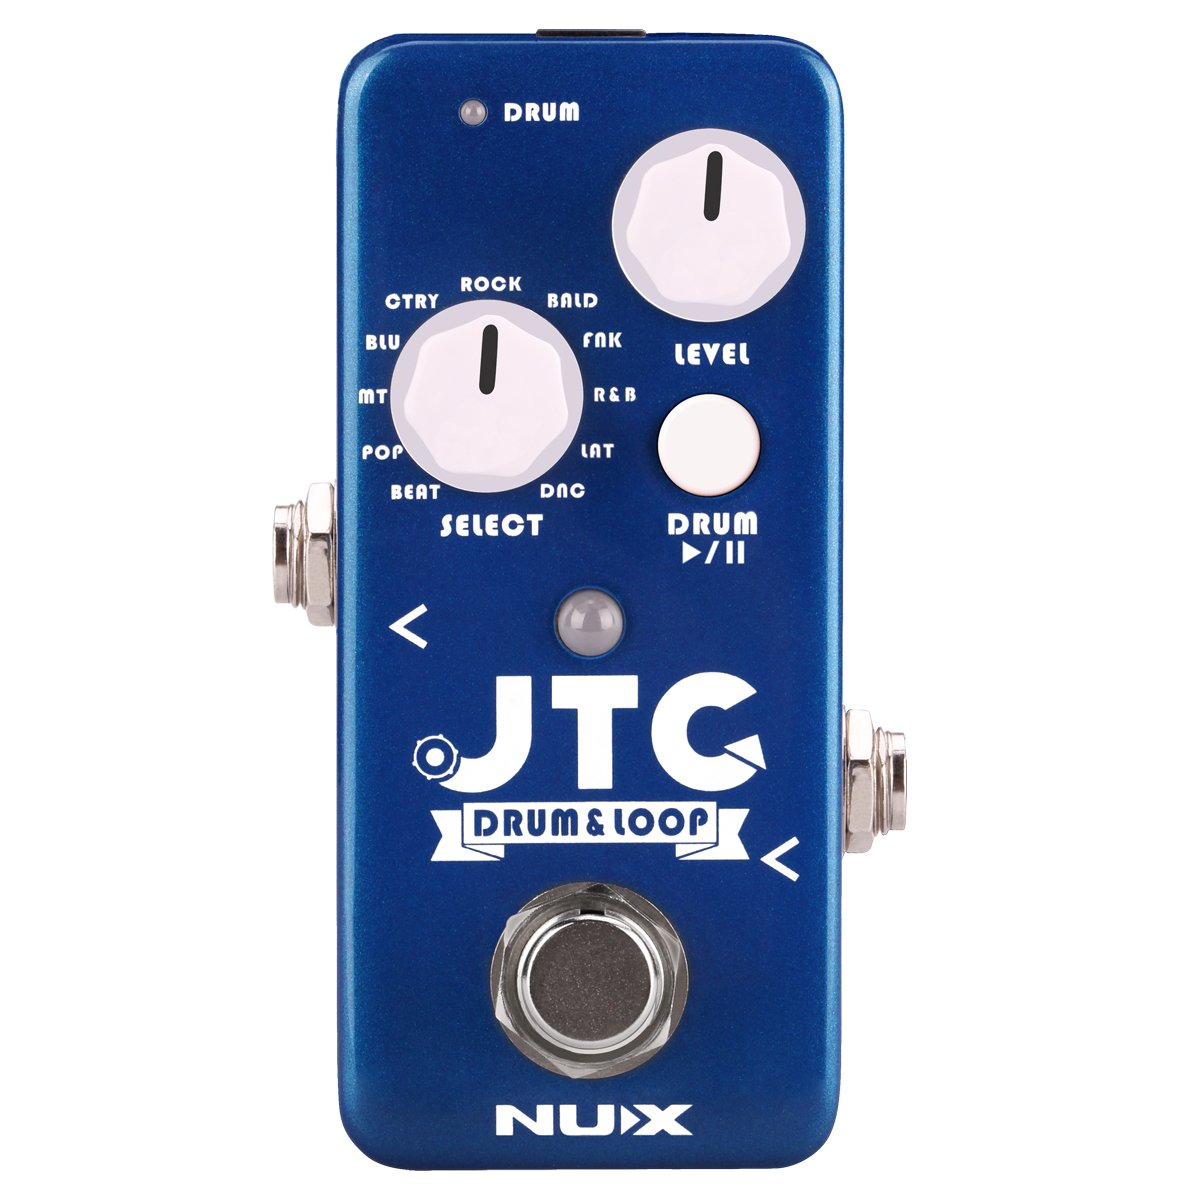 NUX JTC Mini Guitar Looper Auto Detection Drum Machine 24 bit Audio 6 Minutes Recording Time Playing in Tempo,the Drum will follow the loop speed automatically by NUX